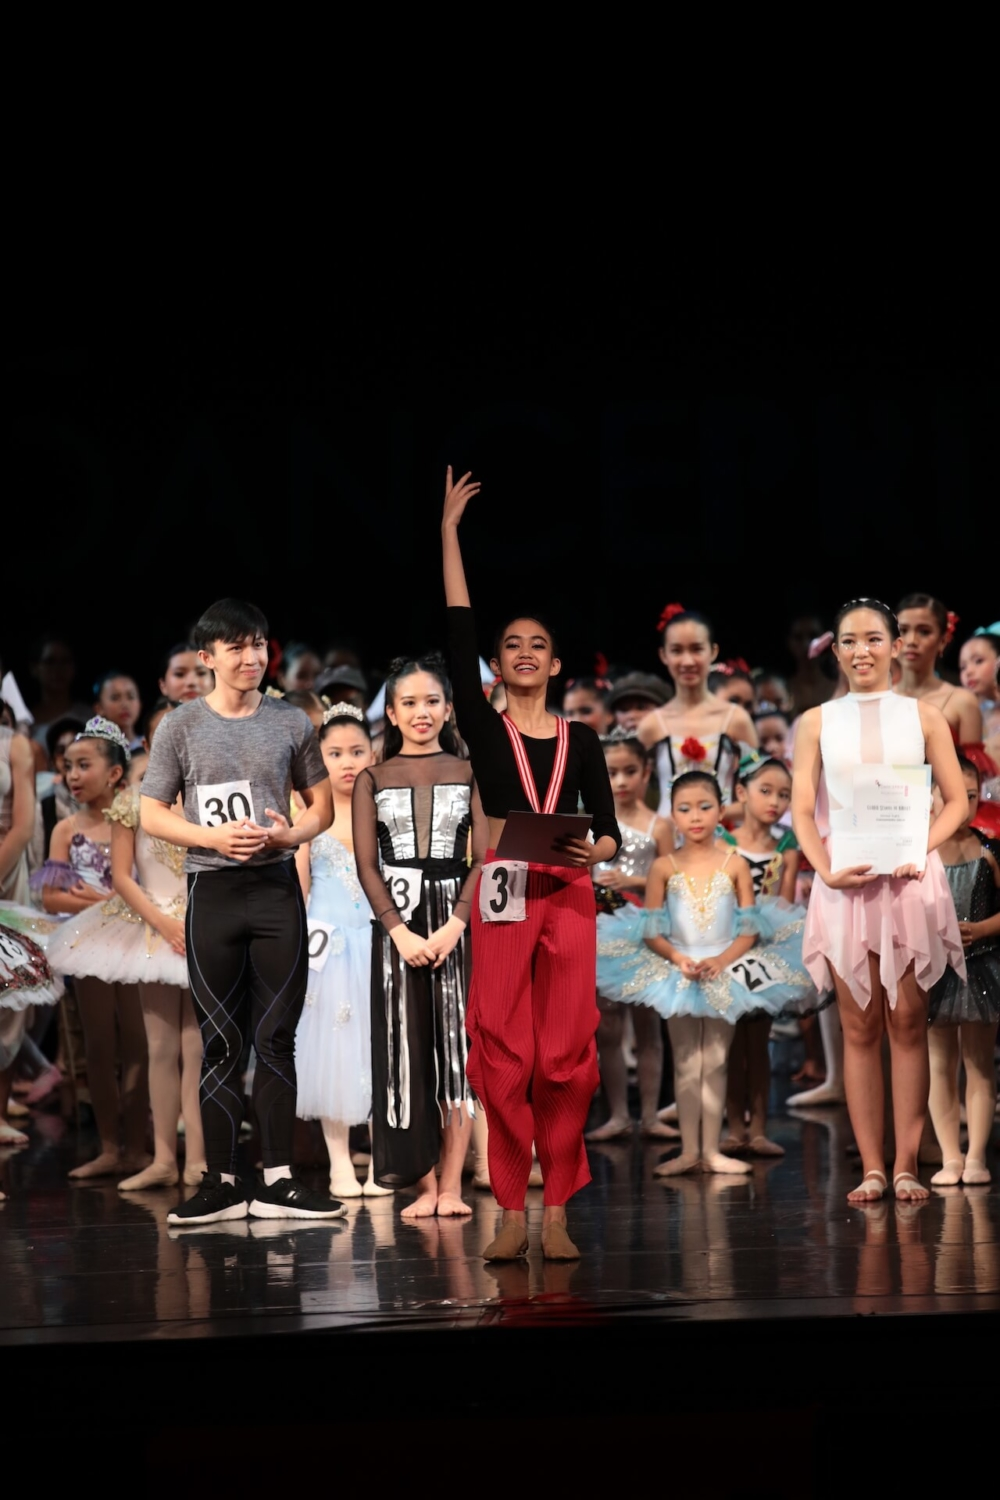 Dance Prix Indonesia 2019 – Awards Ceremony